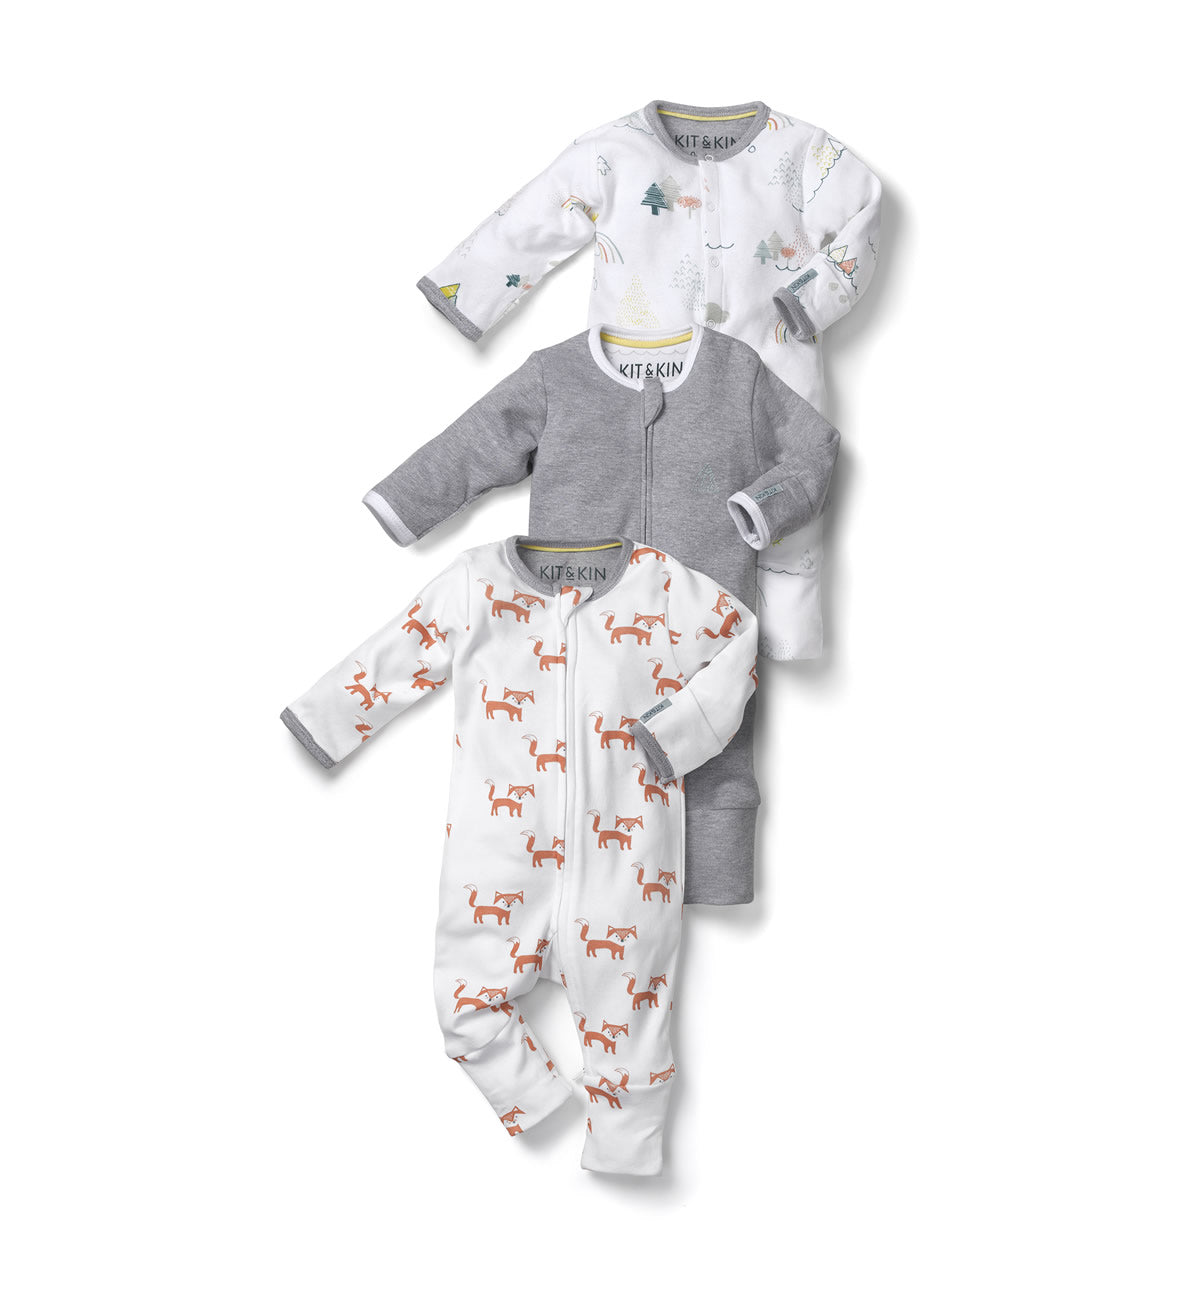 Kit & Kin organic cotton world All-in-one bundle